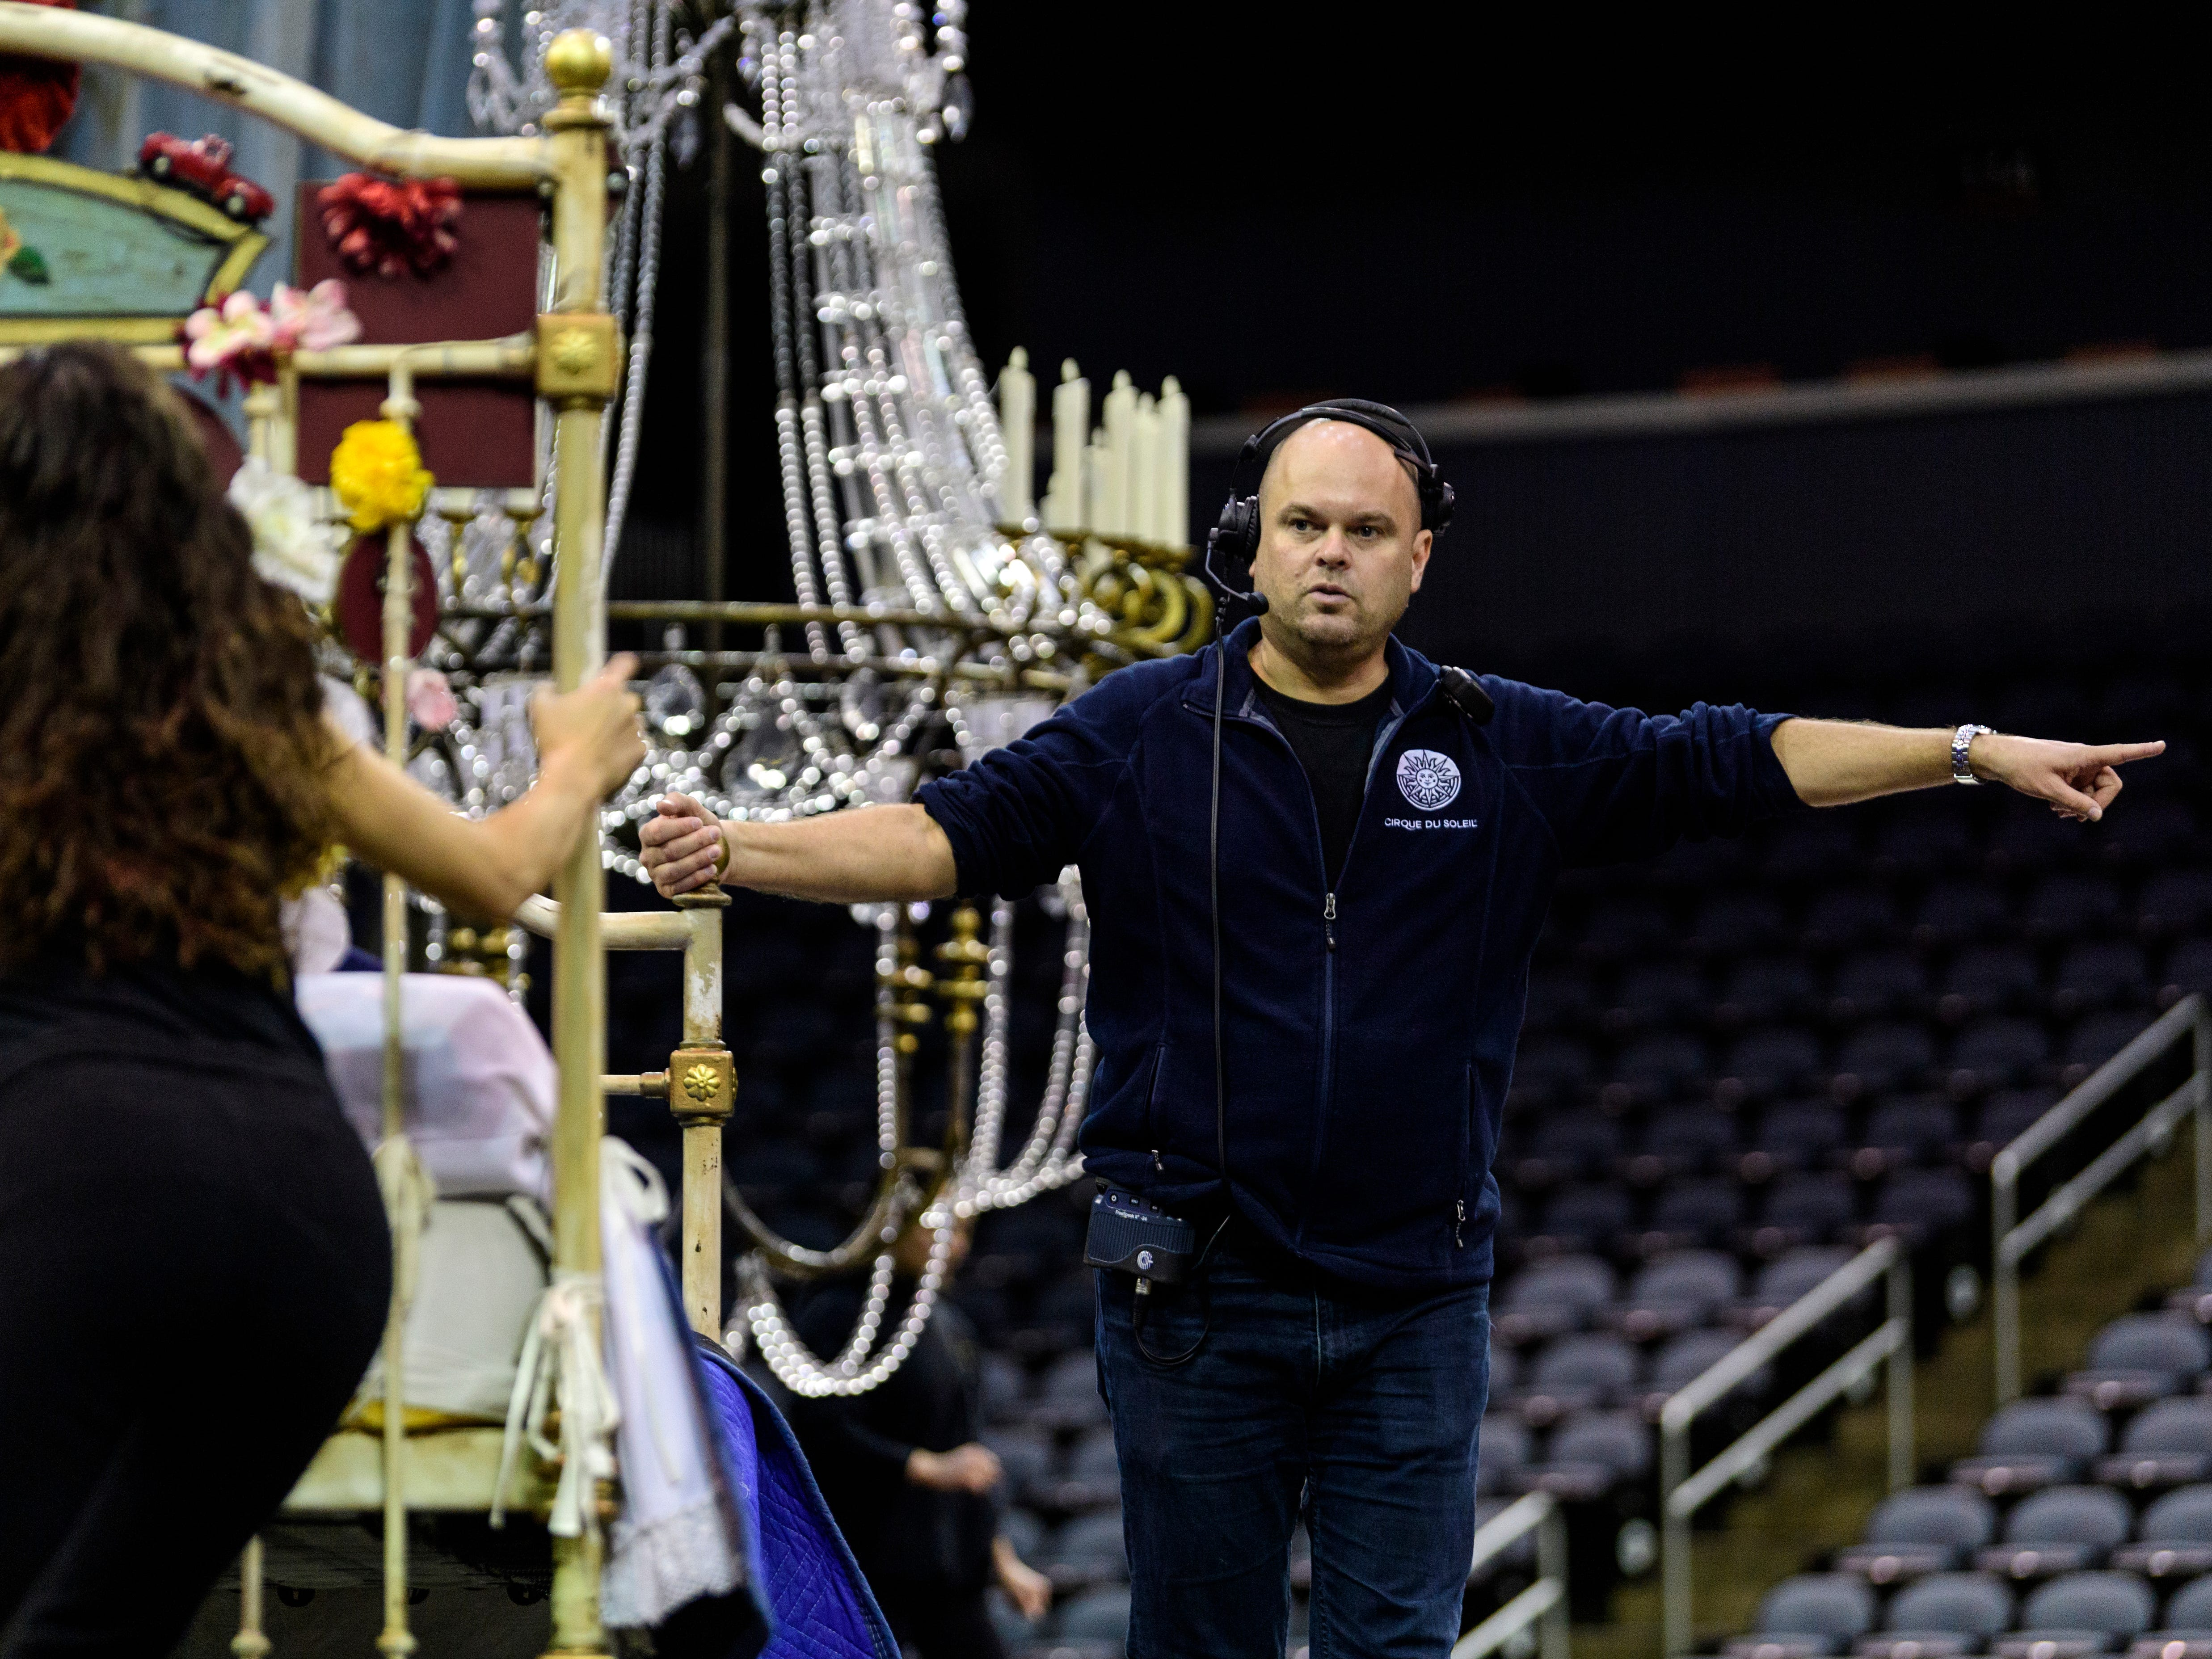 General Stage Manager Grant Gravener, right, helps direct cast members on stage during Cirque du Soleil's Corteo rehearsal at Ford Center in Evansville, Ind., Wednesday, Jan. 23, 2019.